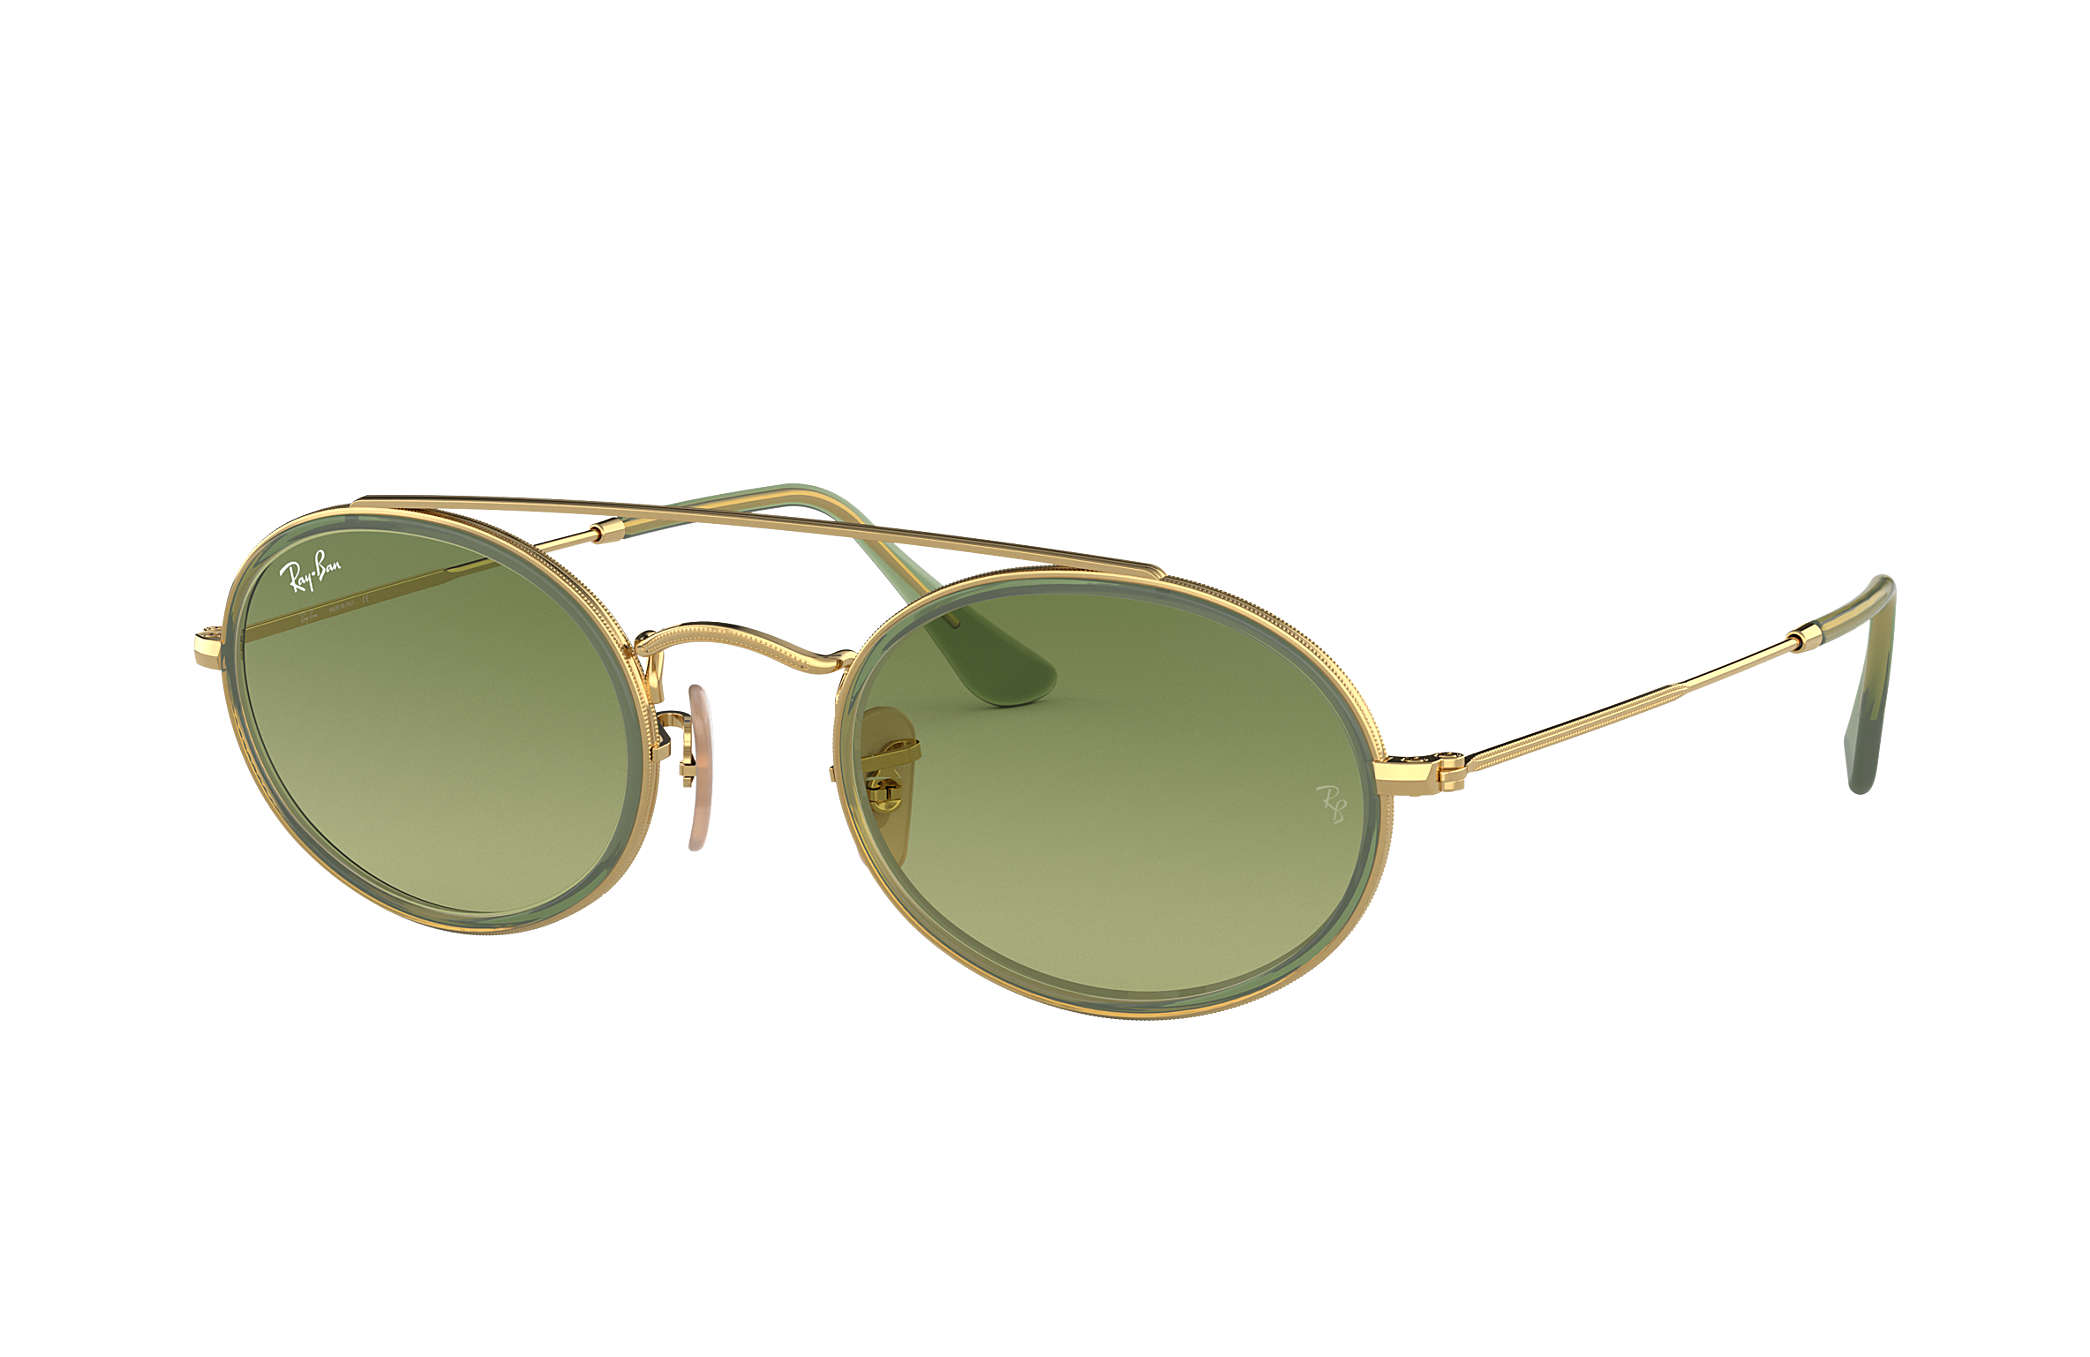 ee3804123d Ray-Ban Oval Double Bridge RB3847N Gold - Metal - Green Lenses ...